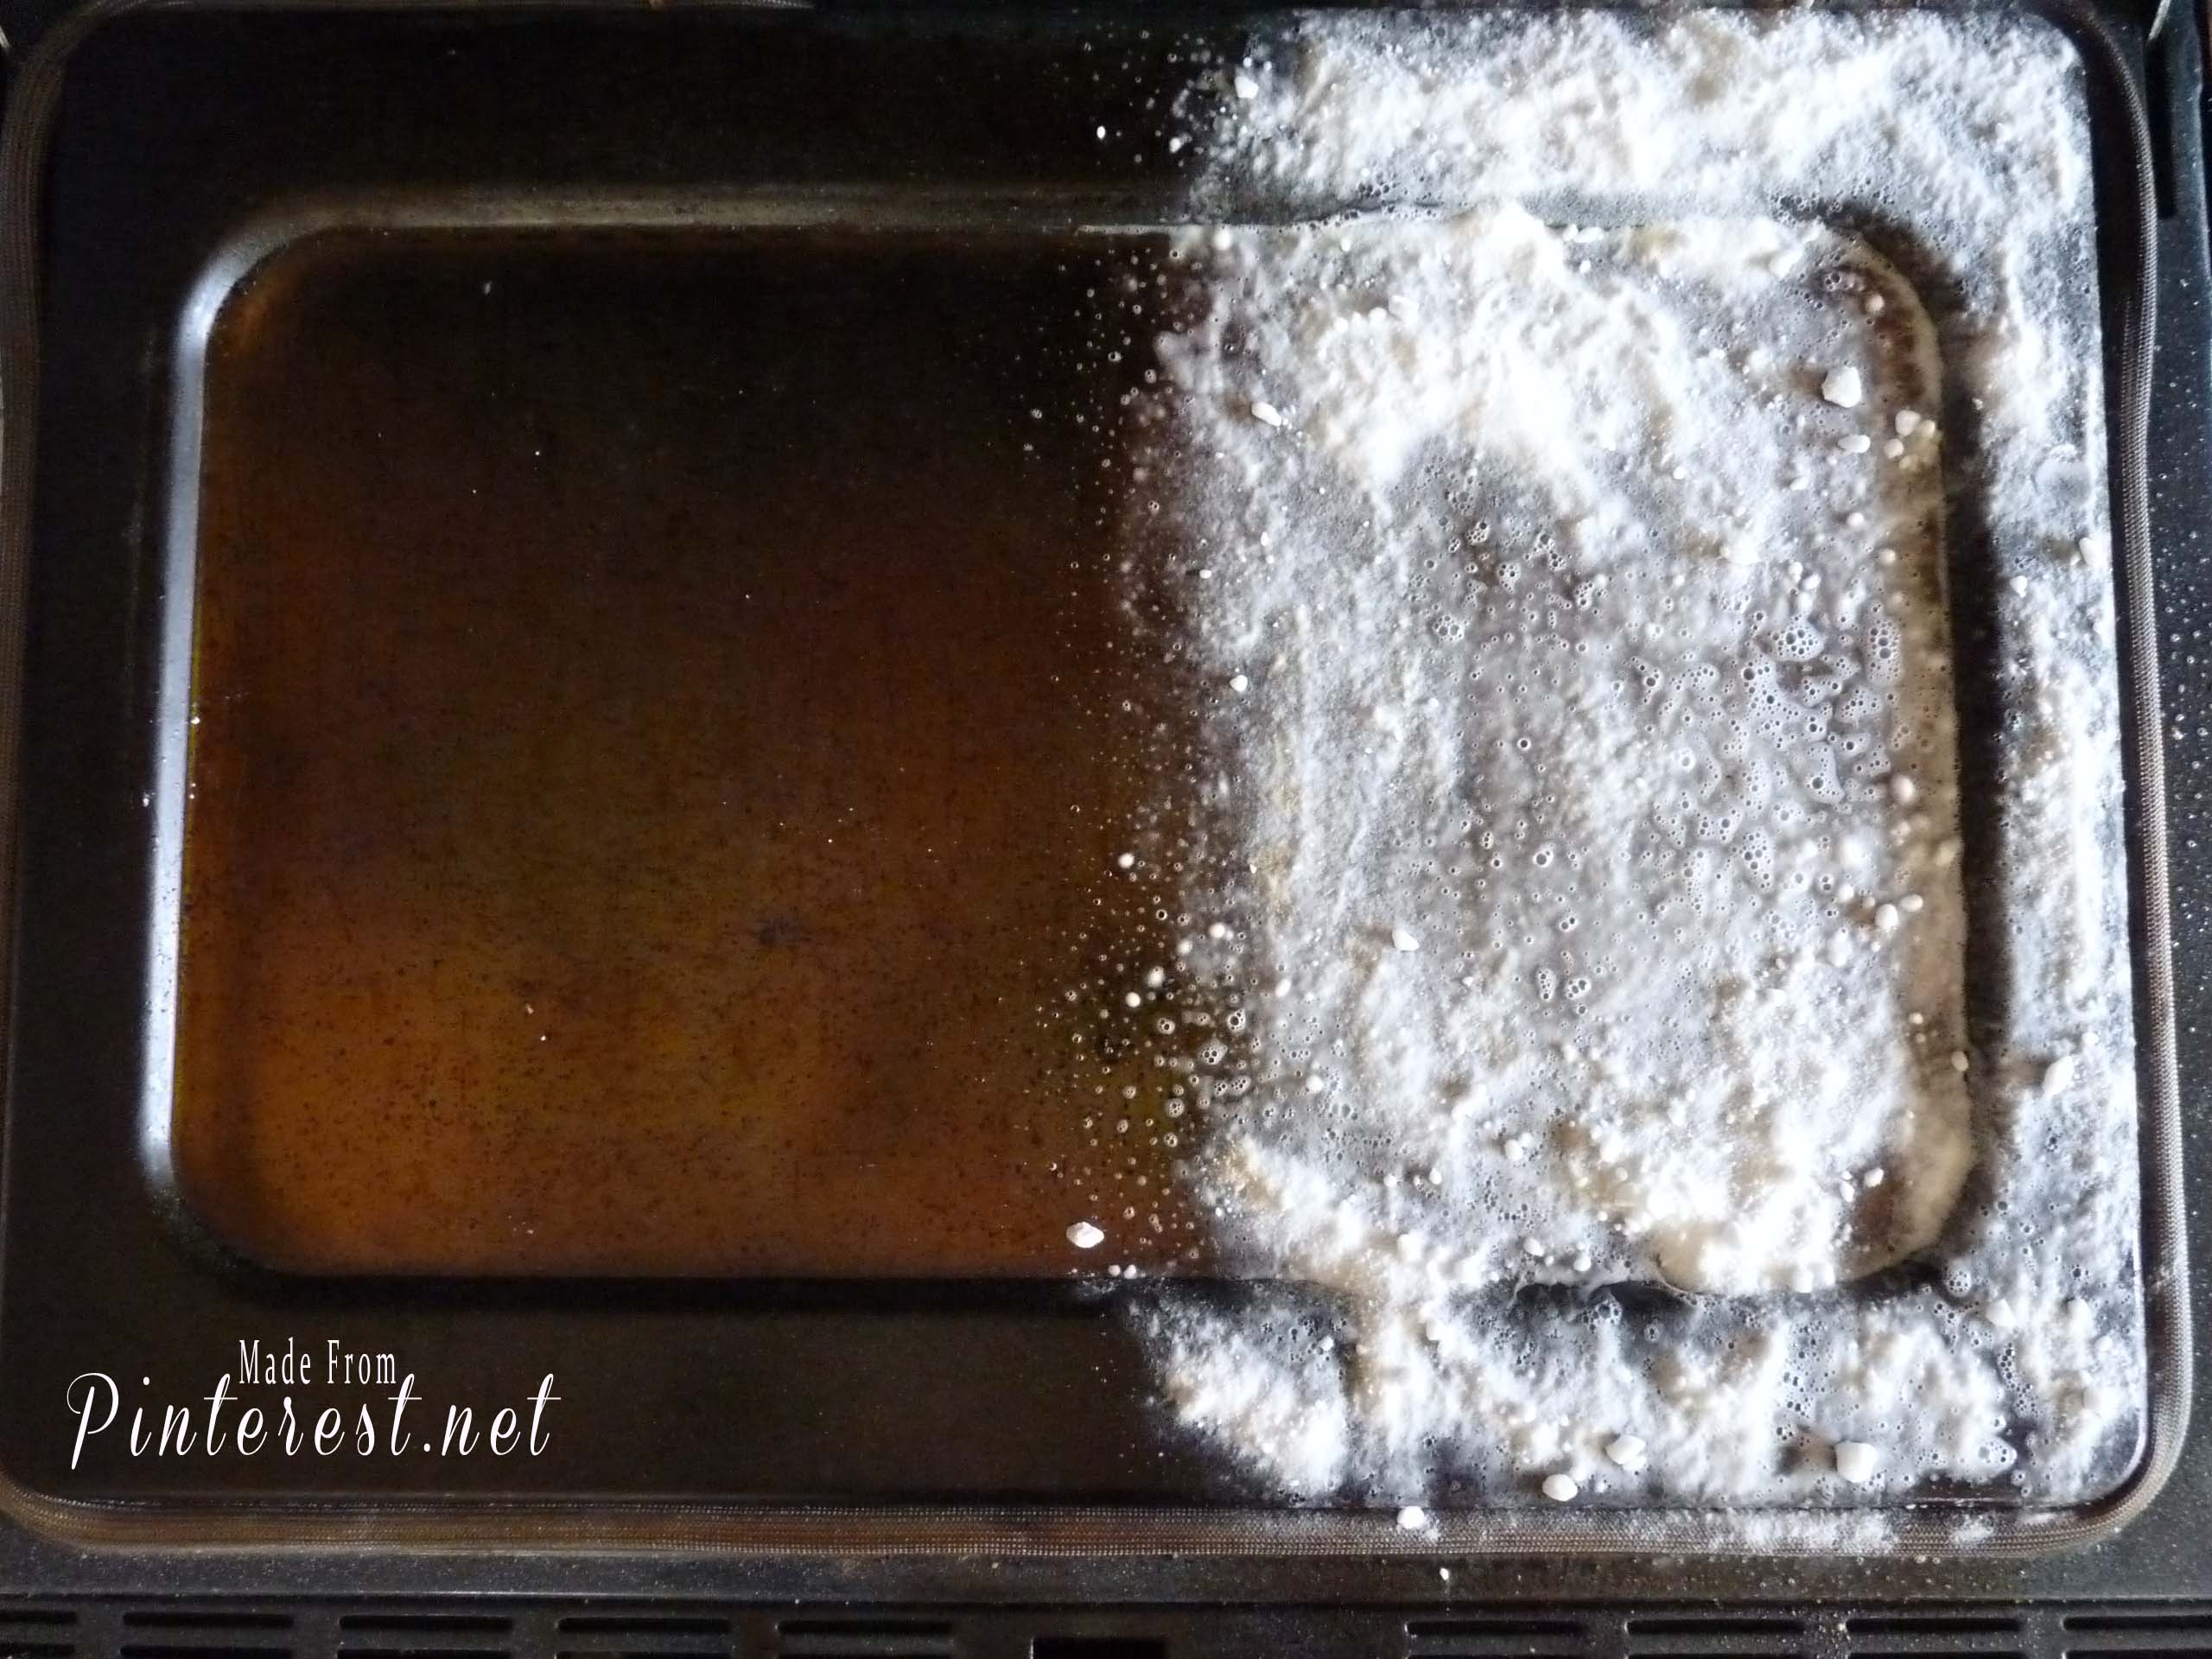 Oven cleaner oven cleaner clean oven How to clean top of oven